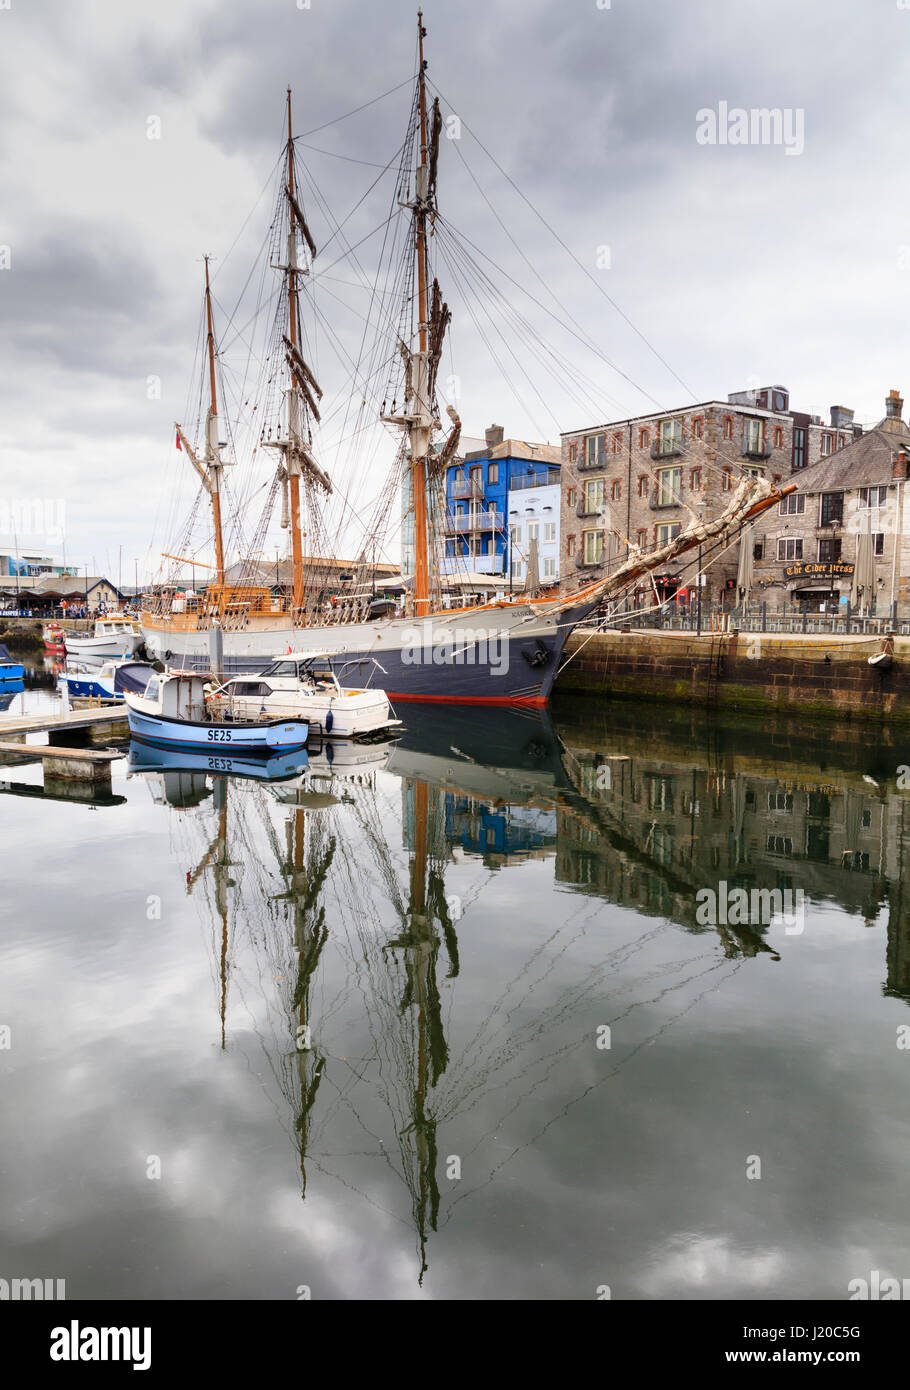 tall-ship-svkaskelot-moored-alongside-the-barbican-in-sutton-harbour-J20C5G.jpg